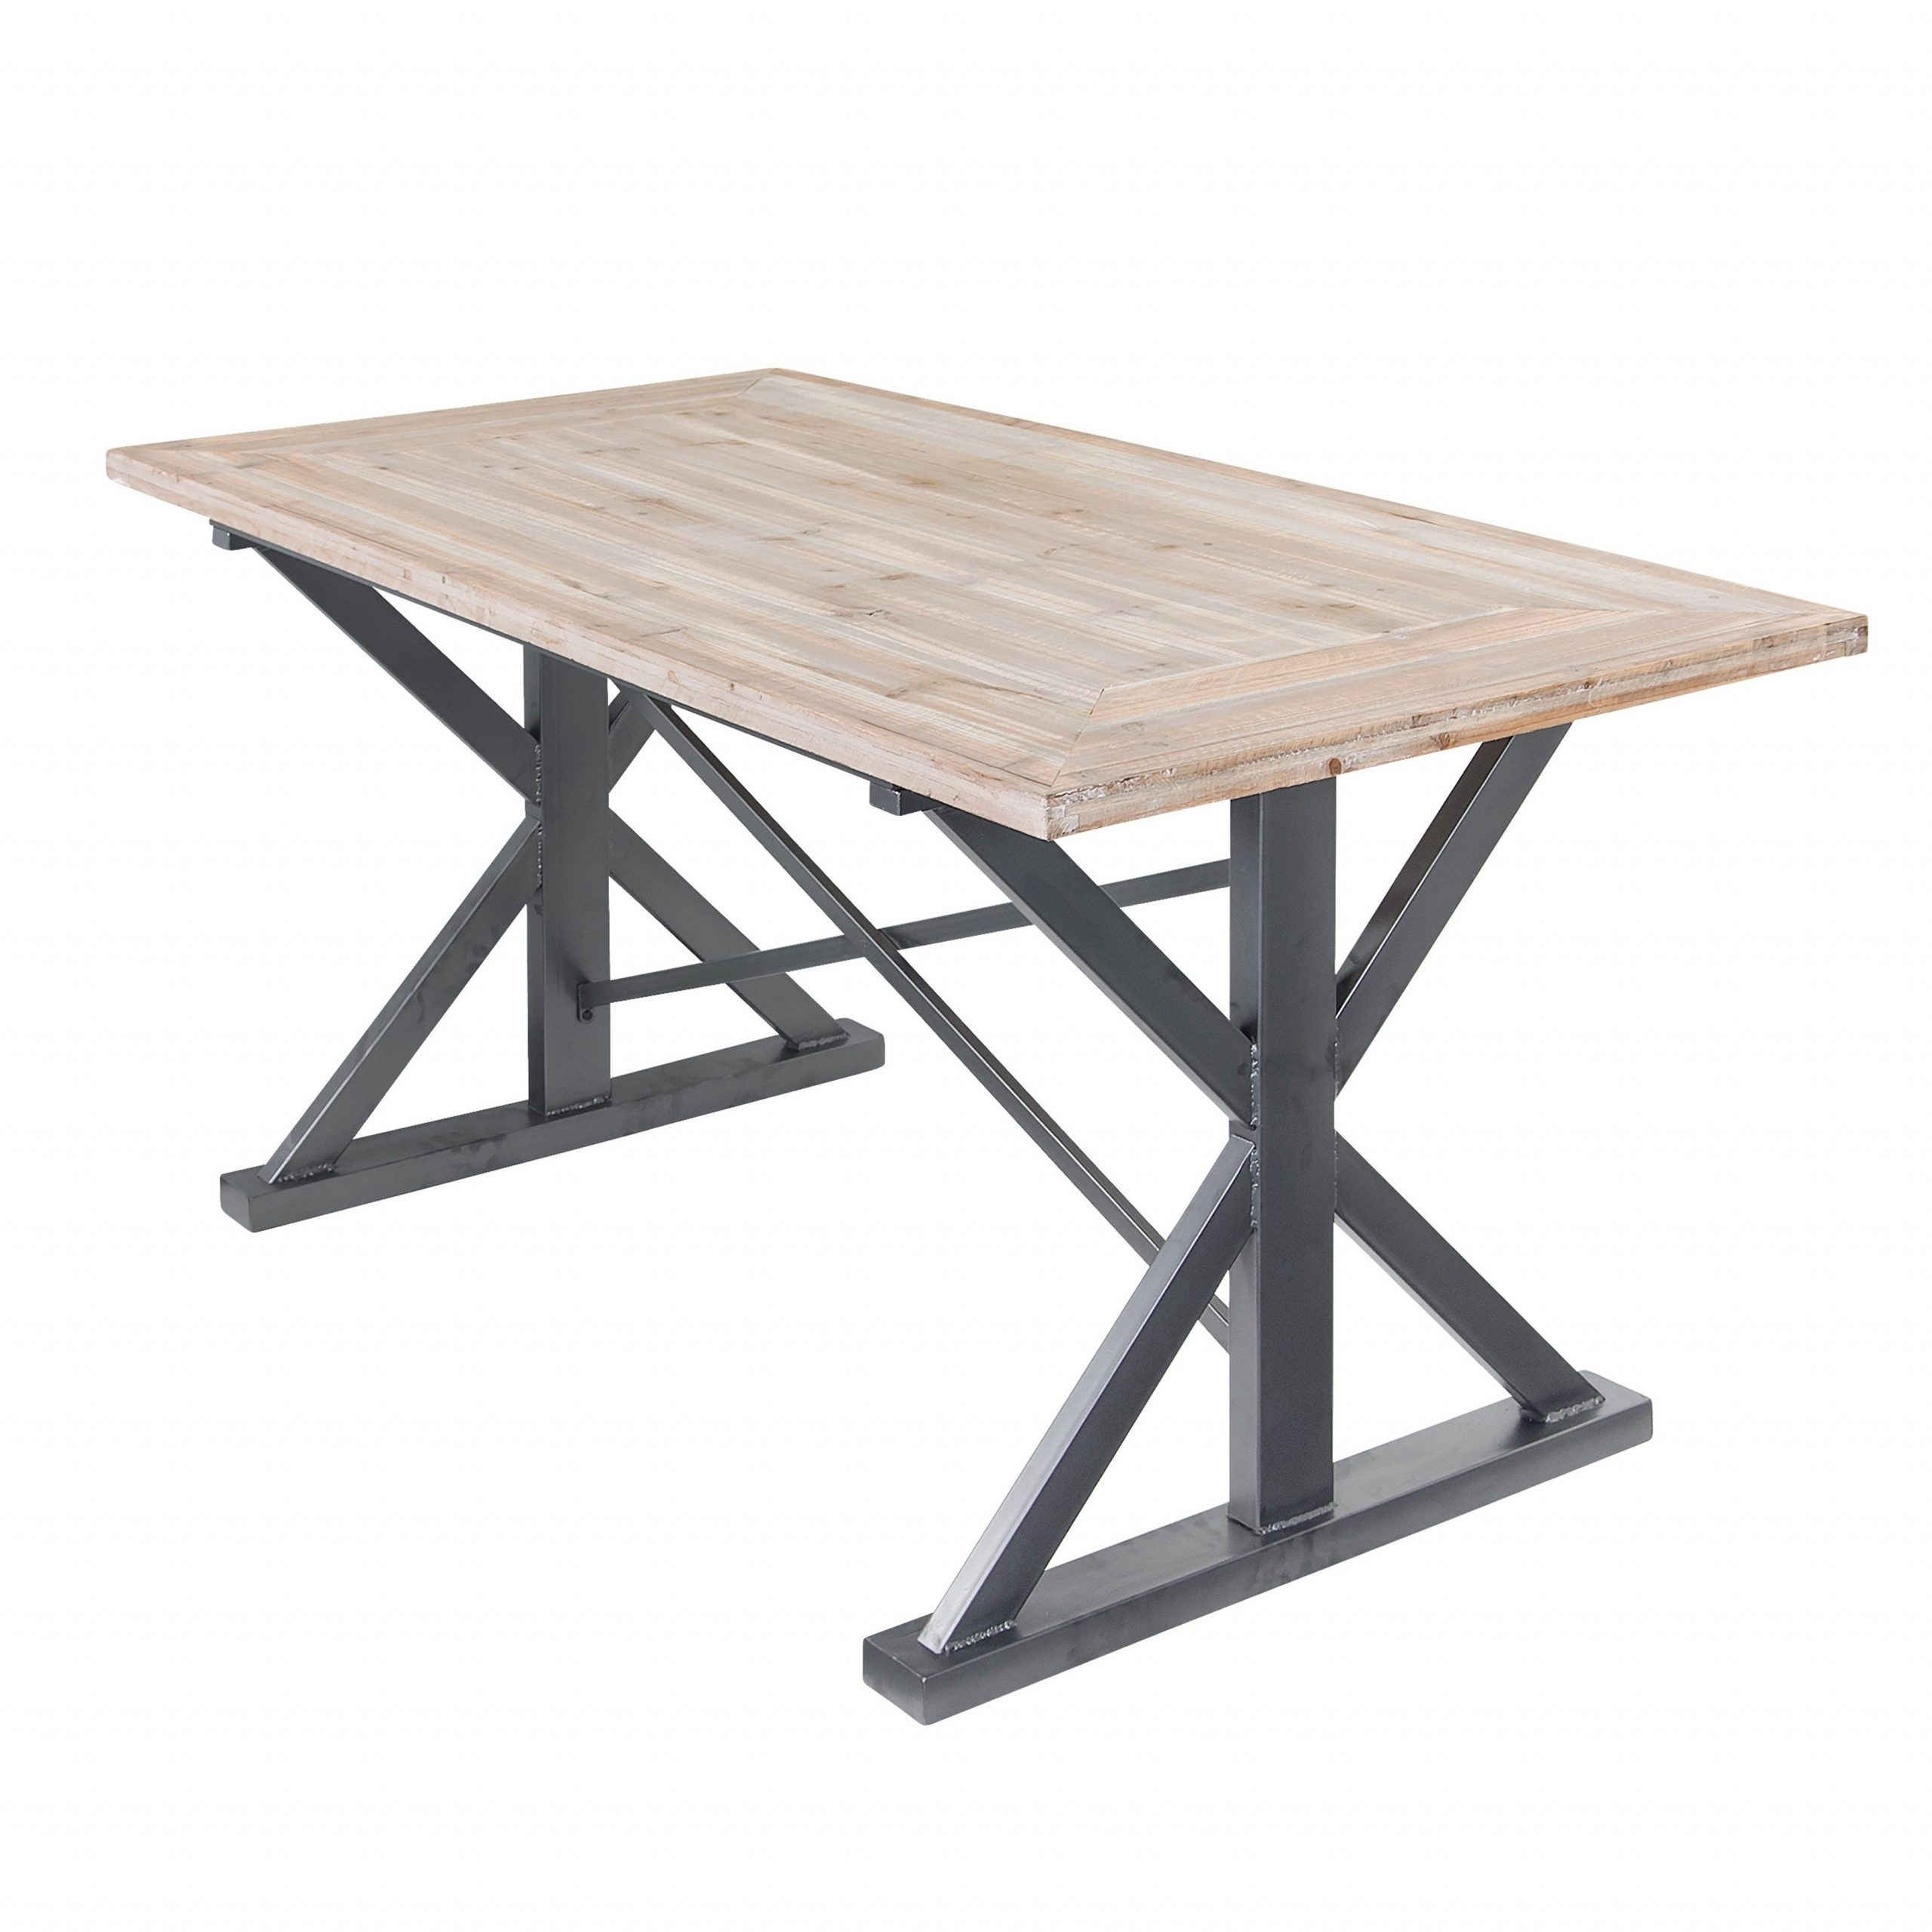 Varaluz Casa Dawson Rustic Wood Dining Table Throughout 2017 Dawson Pedestal Dining Tables (Image 25 of 25)